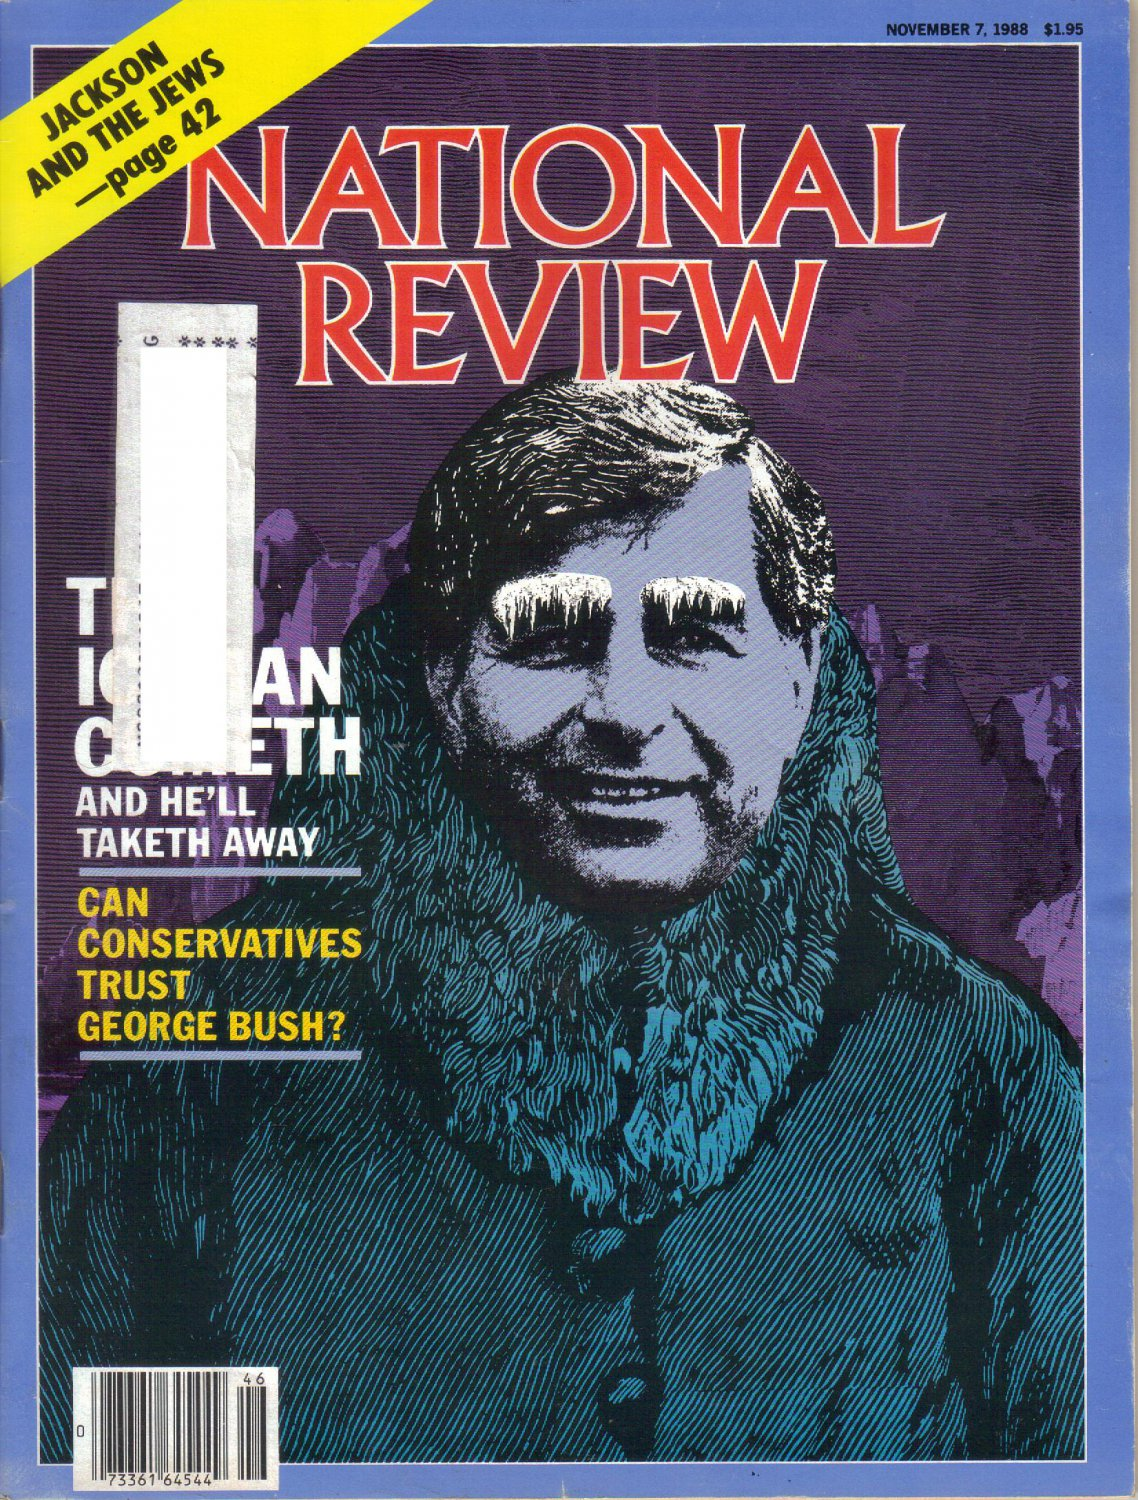 NATIONAL REVIEW November 7 1988 Apologies to Mr Ifshin Buckley Don Feder THE ICEMAN COMETH